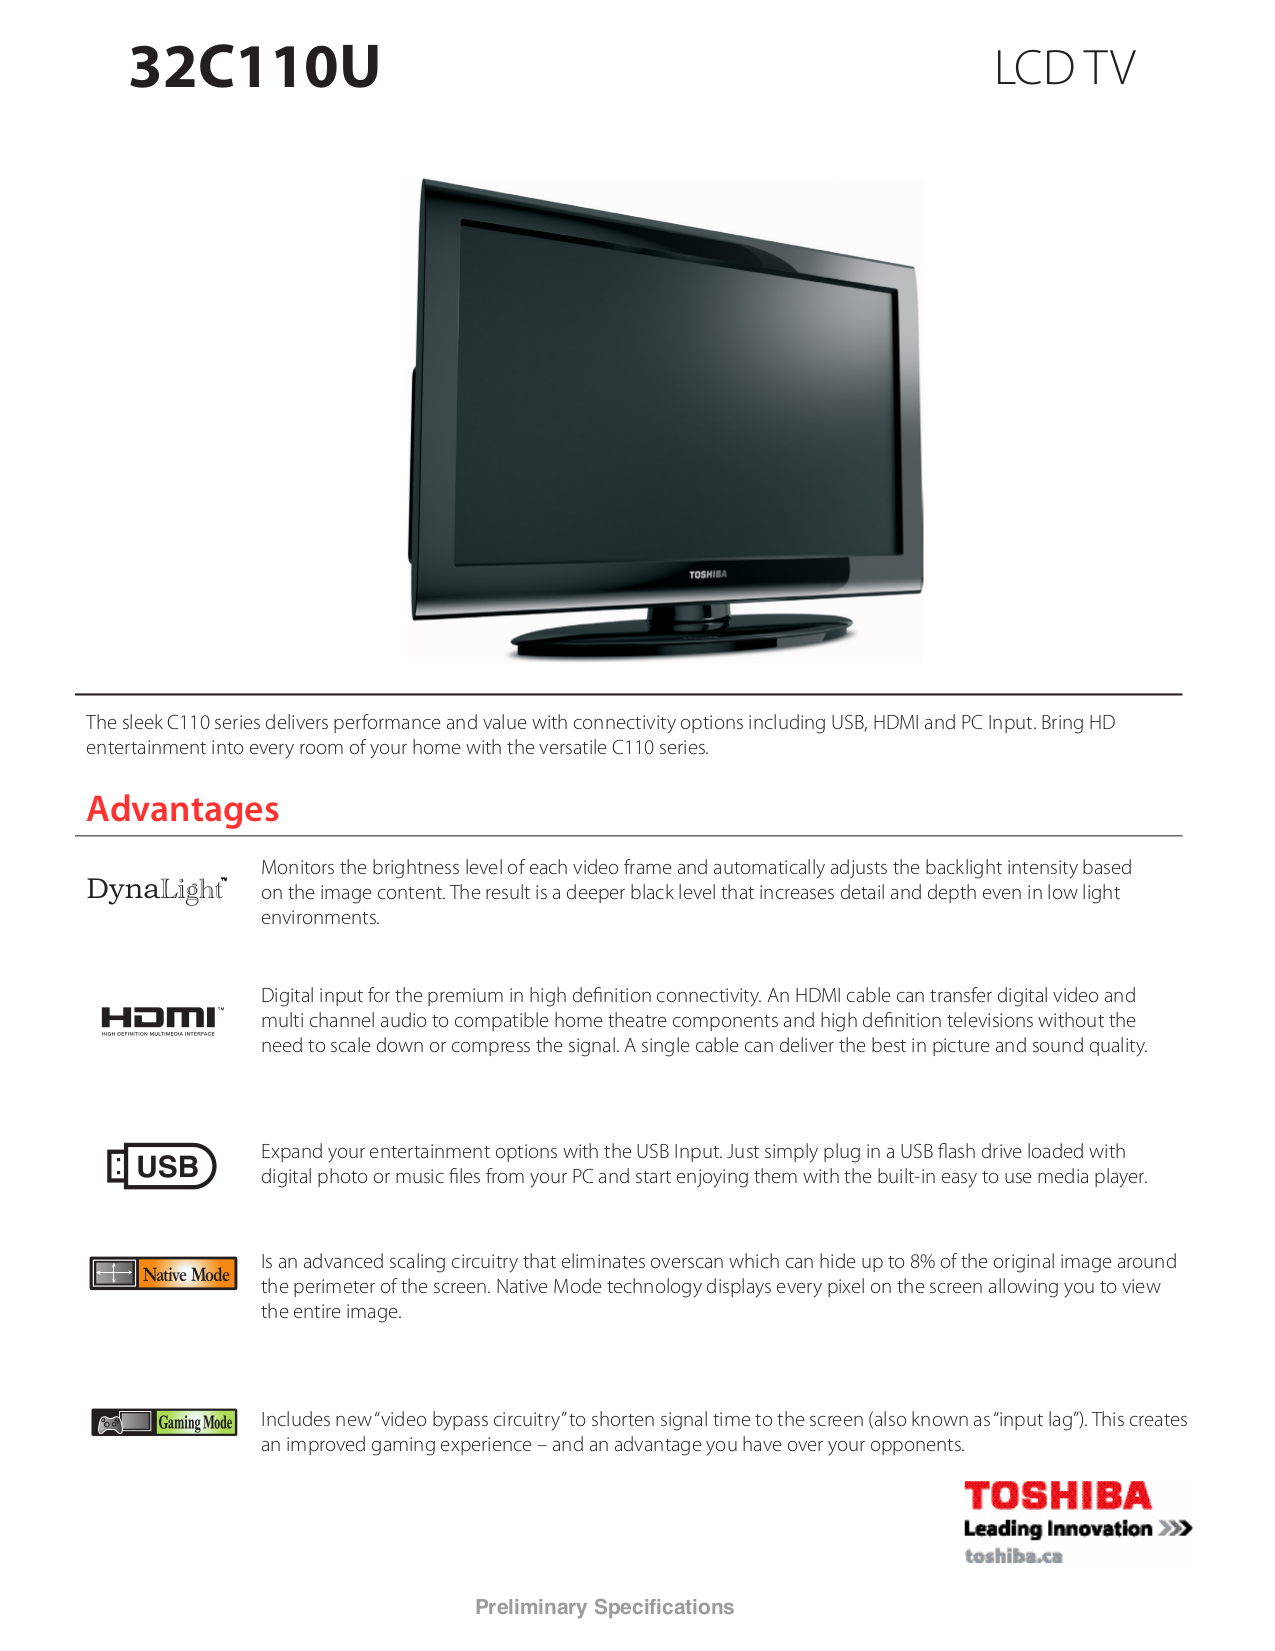 download free pdf for toshiba 32c110u tv manual rh umlib com Toshiba 32C110U Round Back Toshiba 32C110U Round Back